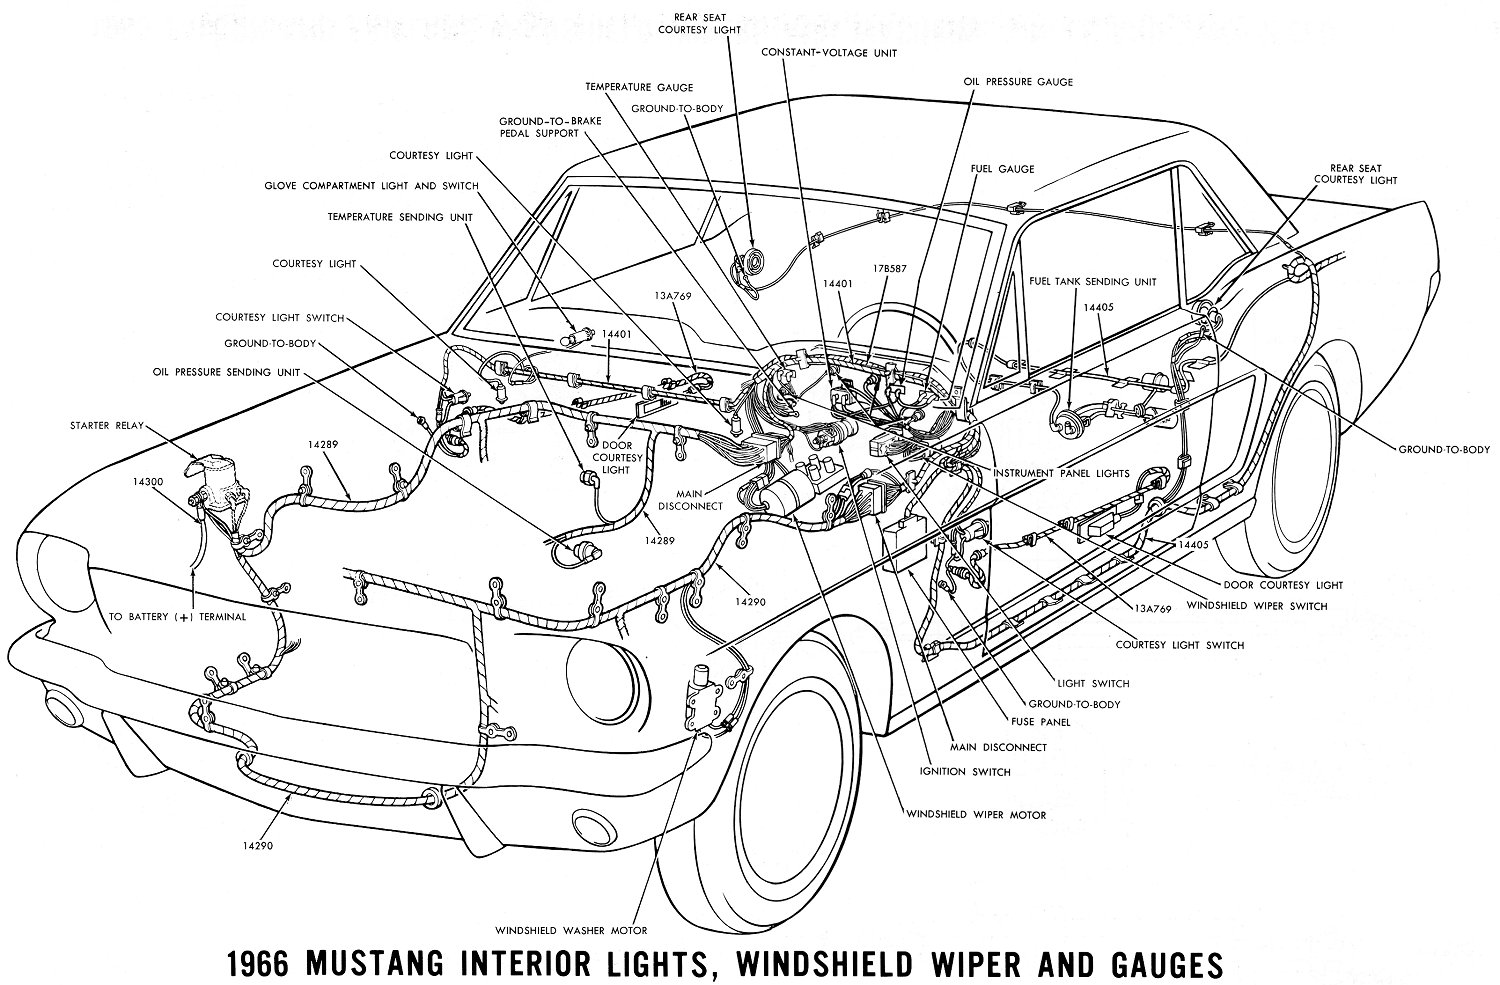 Interior Wiring Diagram   WIRE Center • besides 1966 Charger Wiring Diagram   Residential Electrical Symbols • likewise 1966 Mustang Wiring Diagrams   Average Joe Restoration also  together with 1966 Mustang Wiring Diagram   Wiring Diagram • likewise 66 Mustang Rally Pac Wiring Diagram Ignition 1966 For Switch   19 together with 1966 Mustang Under Dash Wiring Diagram Diagrams And Vacuum together with 05 09 Mustang Gt Fuse Box   Wiring Diagrams moreover Pictures 1966 Mustang Wiring Diagram Radio Stereo Schematic Binatani likewise Wildcat Wiring Diagram   Wiring Diagrams furthermore 1966 mustang wiring diagram – fharates info additionally 1966 Mustang Wiring Diagrams   WIRE Center • as well  likewise  together with 1966 Bus Wiring Diagram Thegoldenbug    WIRE Center • moreover The Care and Feeding of Ponies  1965 Mustang wiring diagrams. on 1966 mustang interior wiring diagram